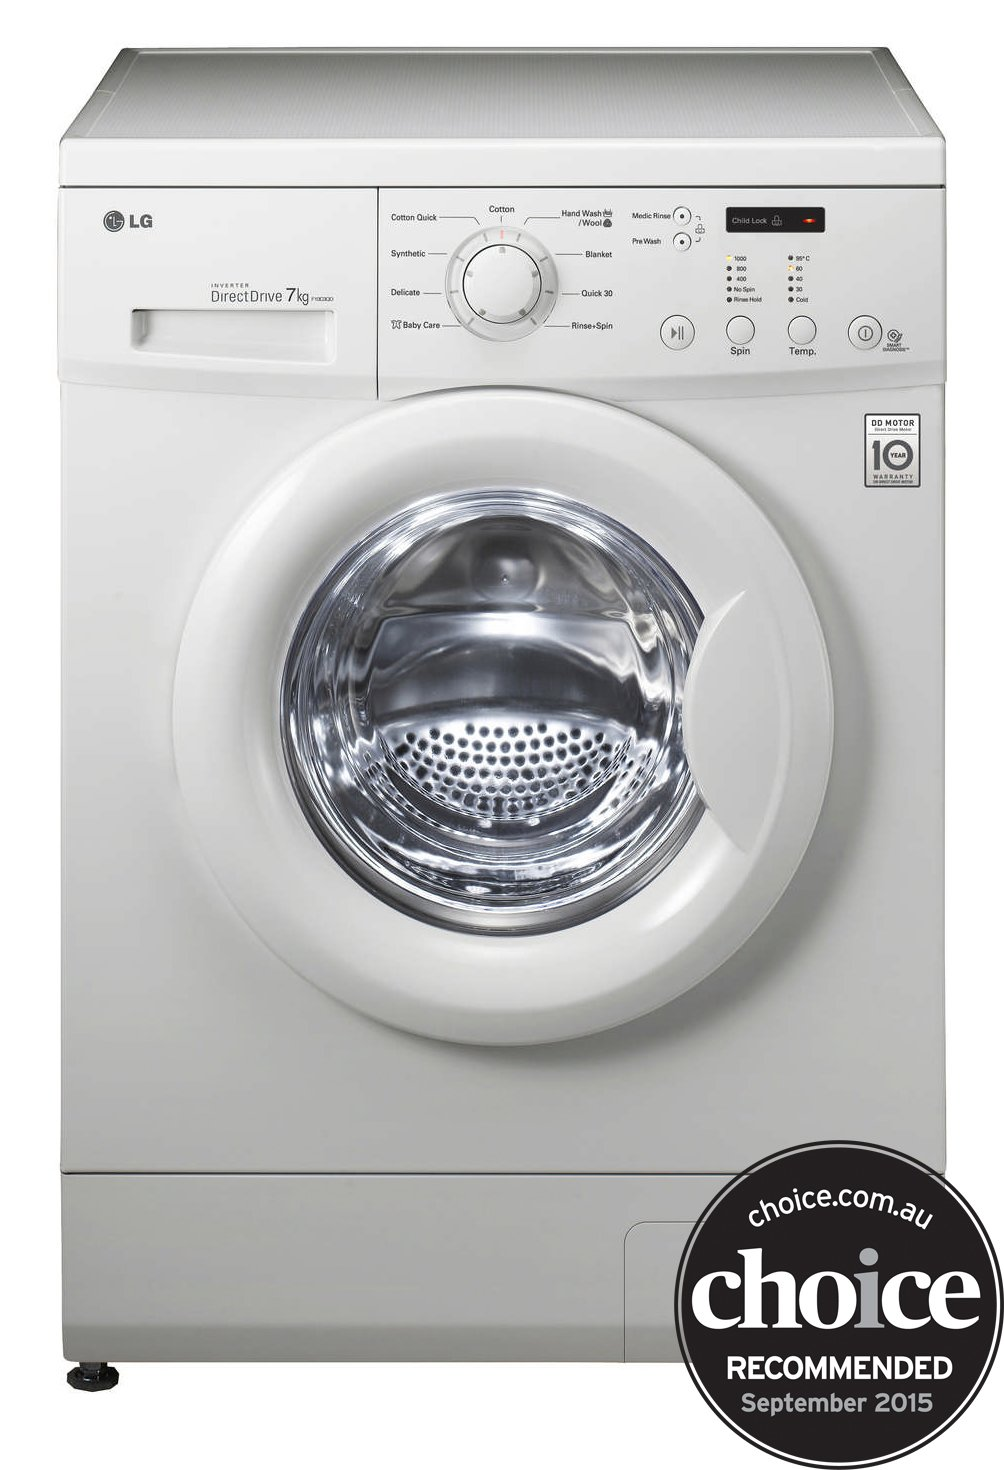 lg wd1200d 7kg front load washing machine reviews appliances online. Black Bedroom Furniture Sets. Home Design Ideas